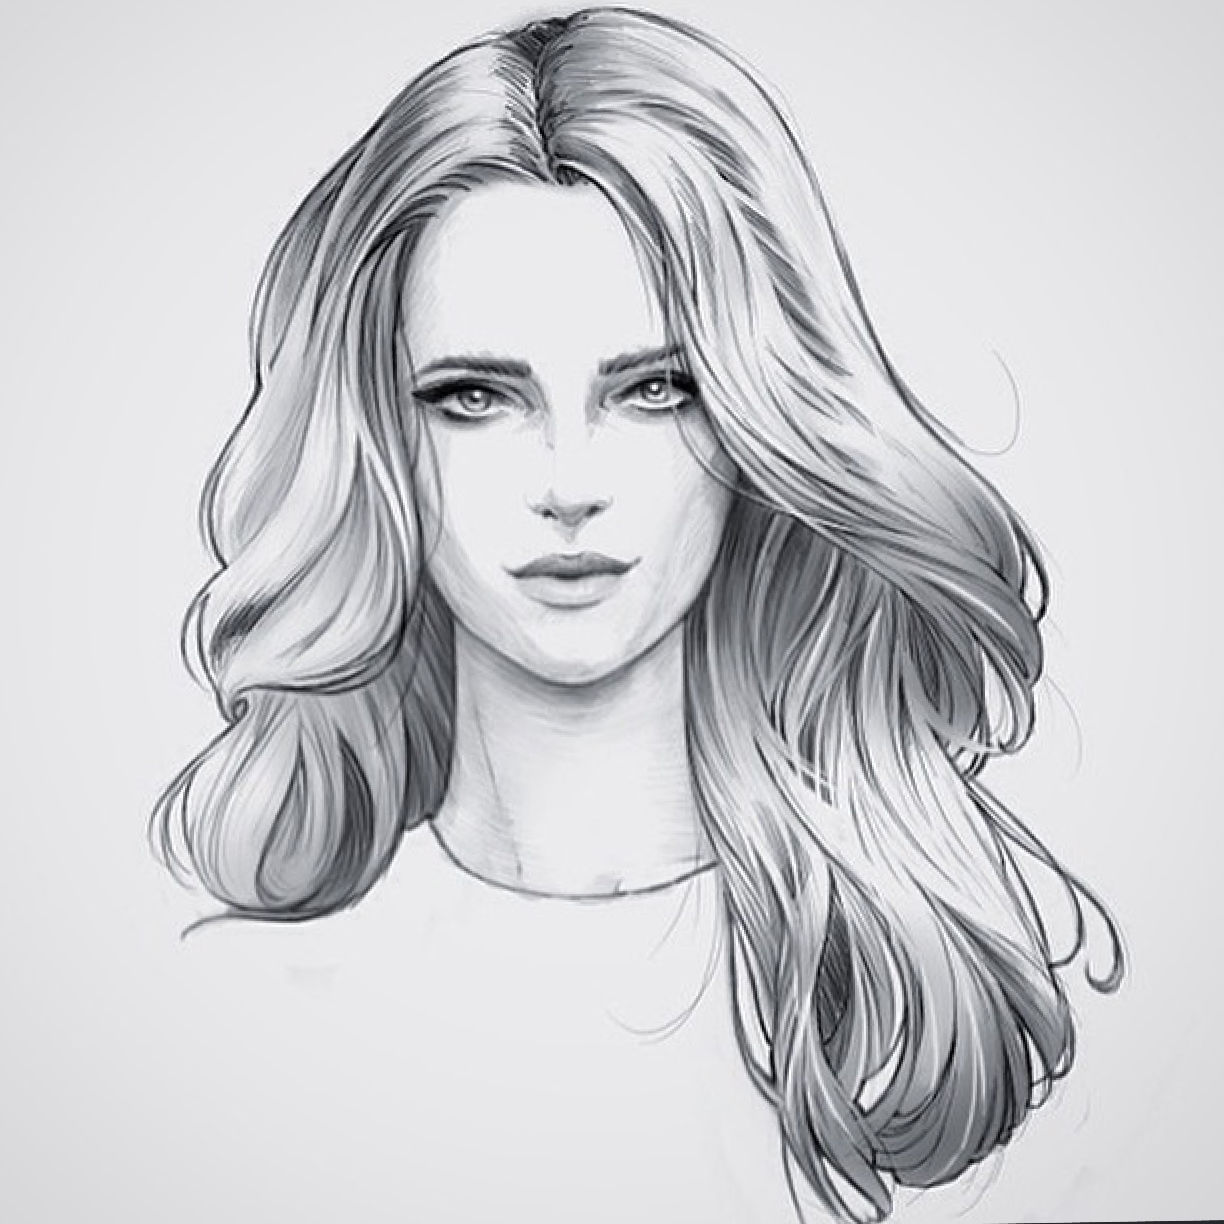 Hair female fashion illustration hair face illustration woman drawing pencil art